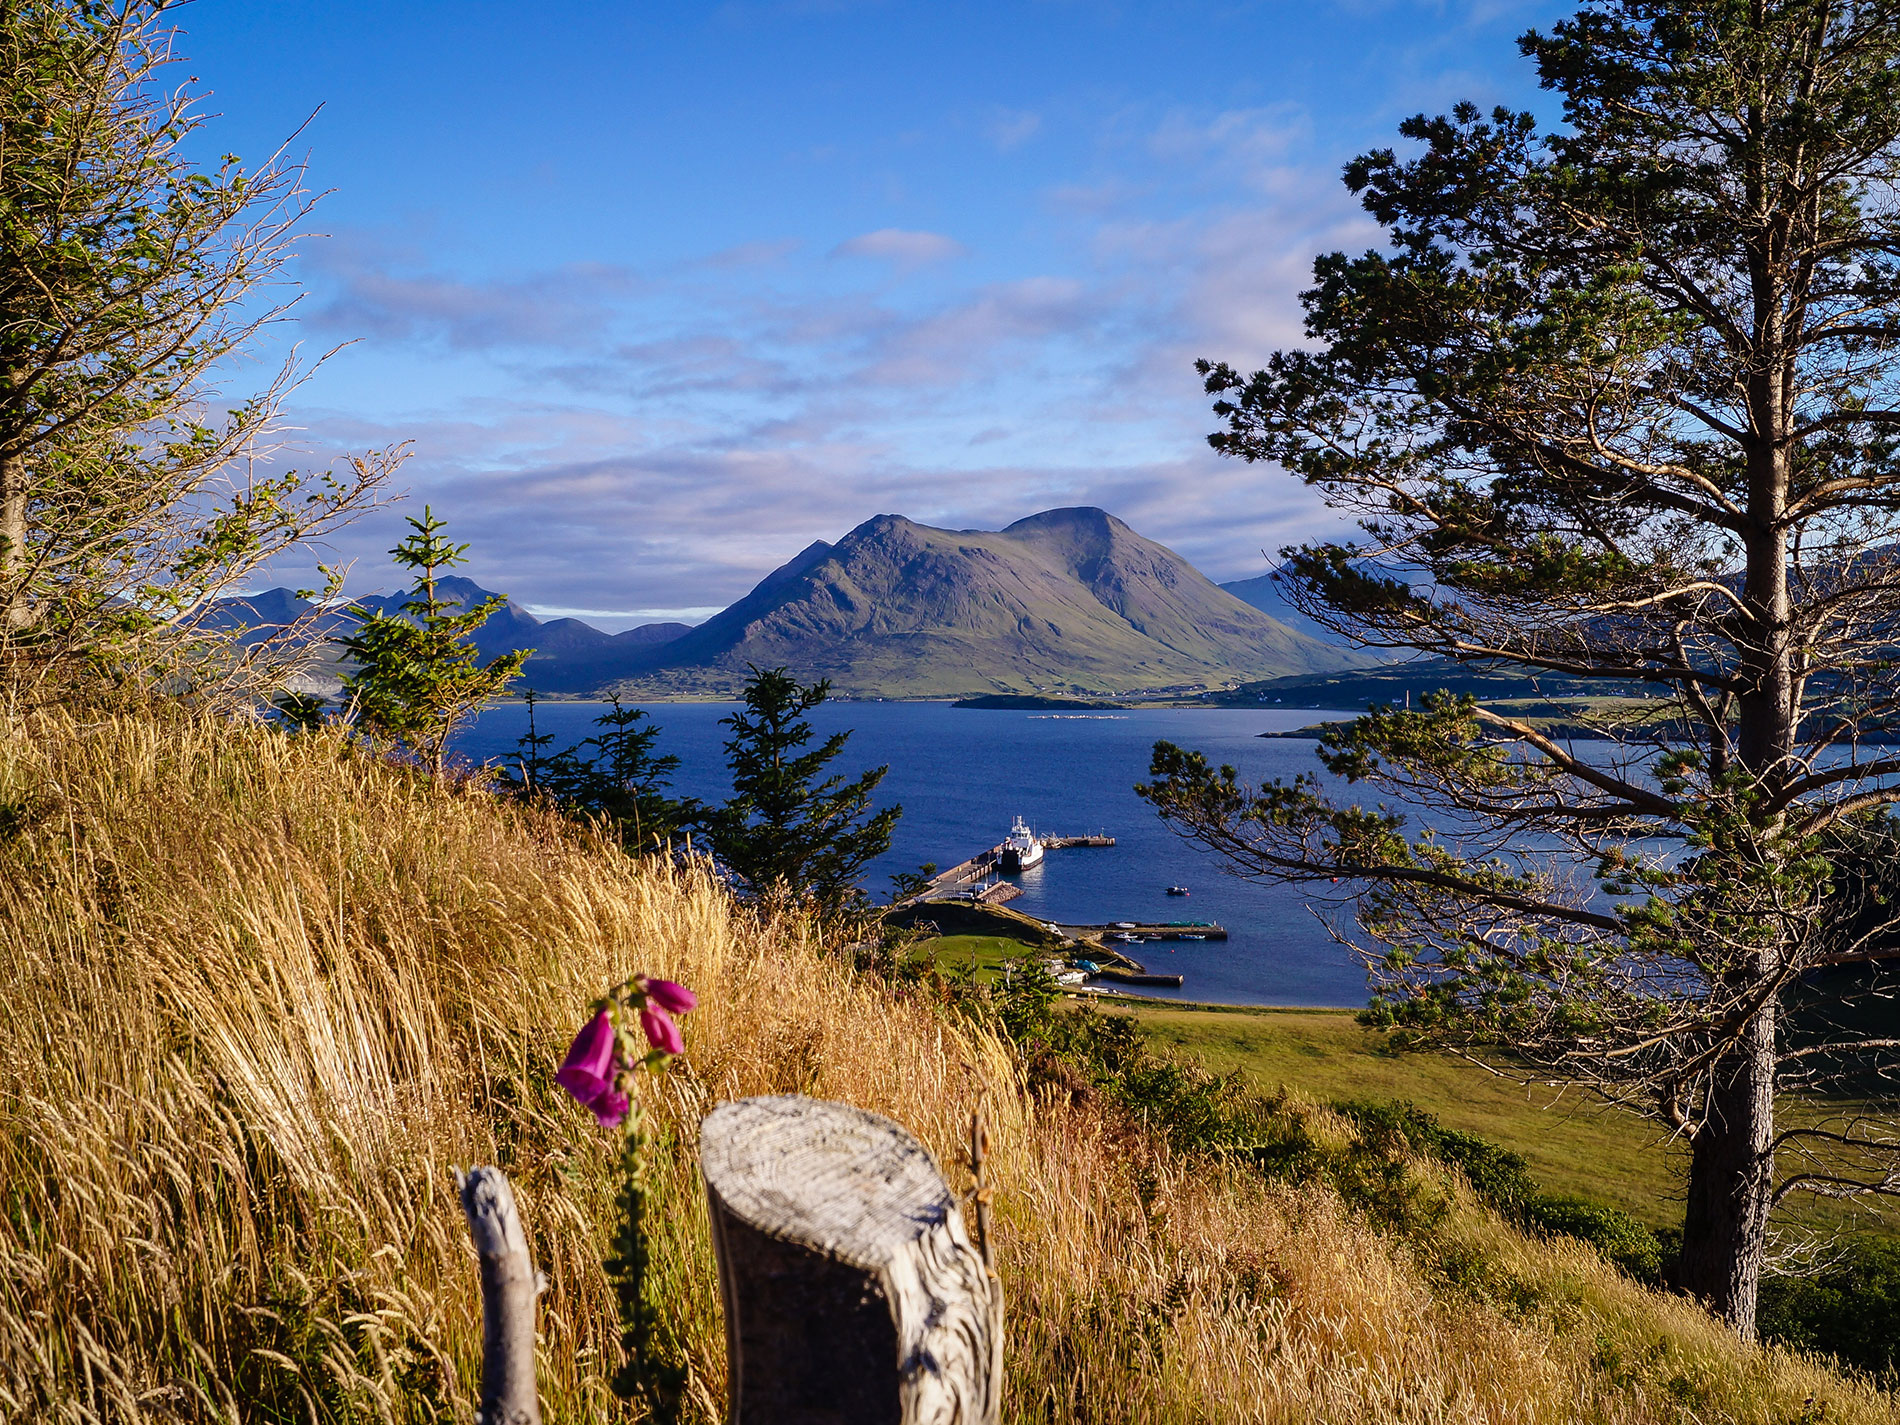 Views of the Isle of Skye from Temptation Hill, Raasay